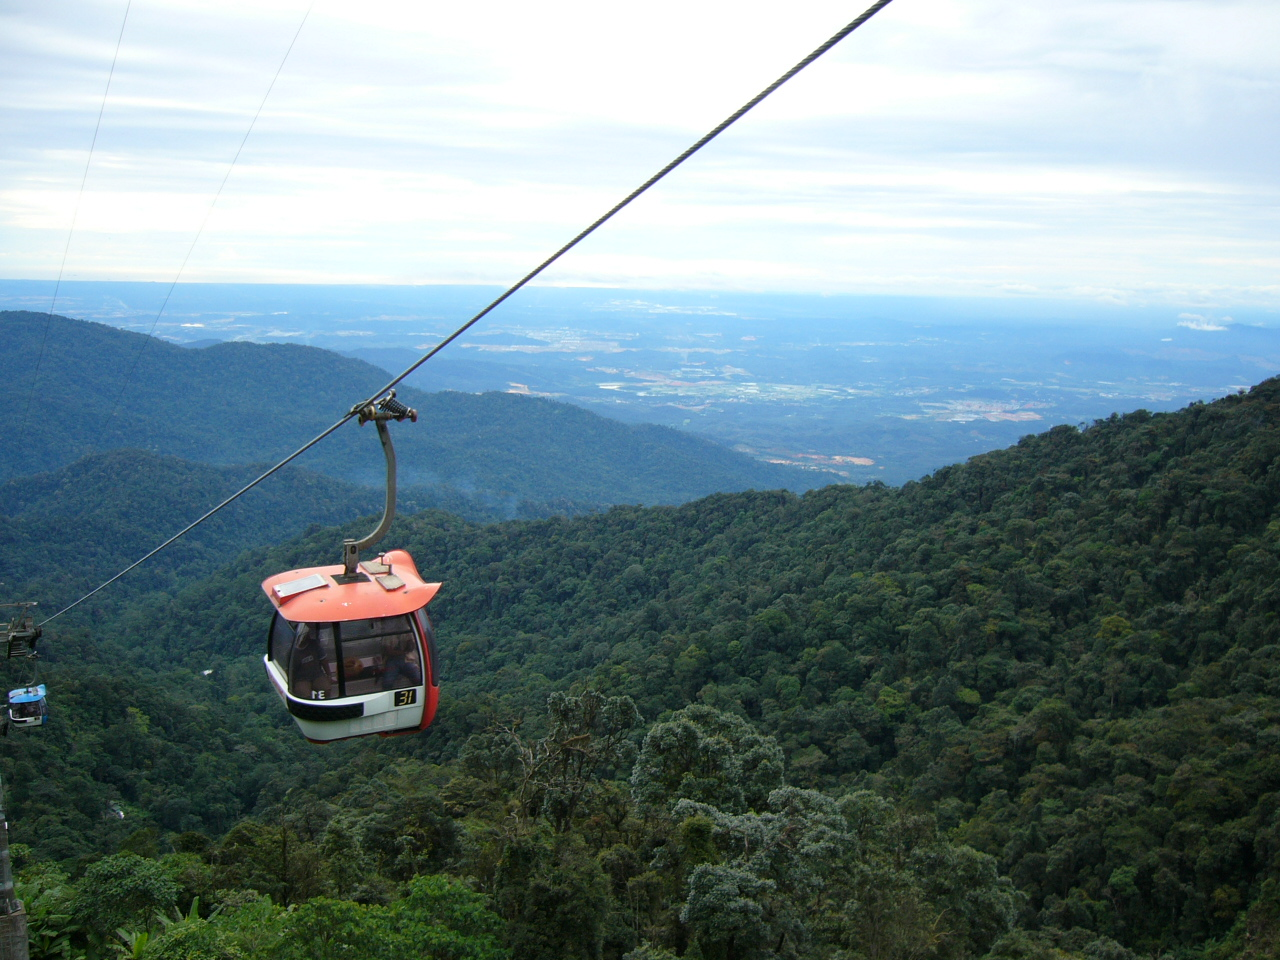 Genting Highlands Malaysia  city images : Genting Highland Malaysia 13 Wikipedia, the free ...